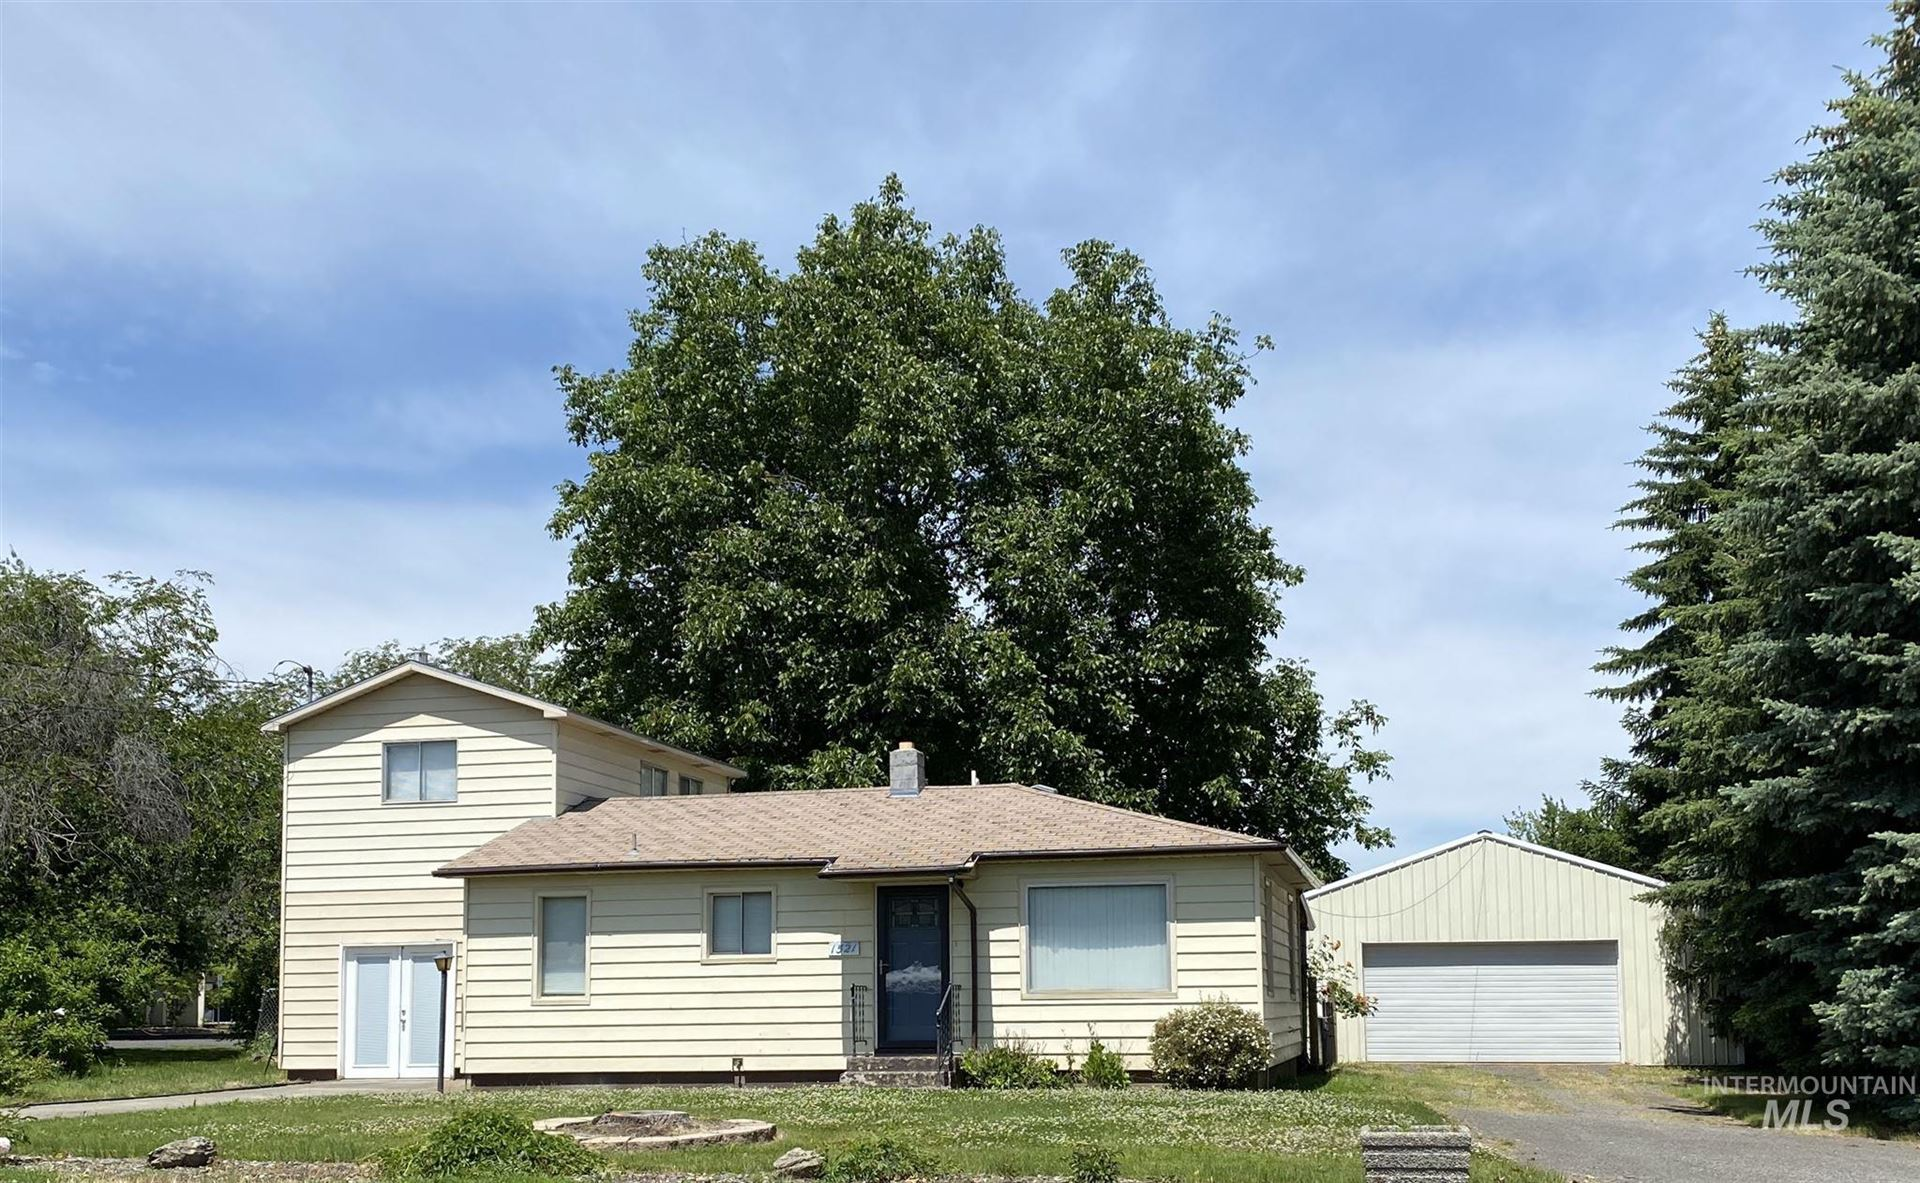 1521 Ripon Ave, Lewiston, ID 83501 - MLS#: 98768984